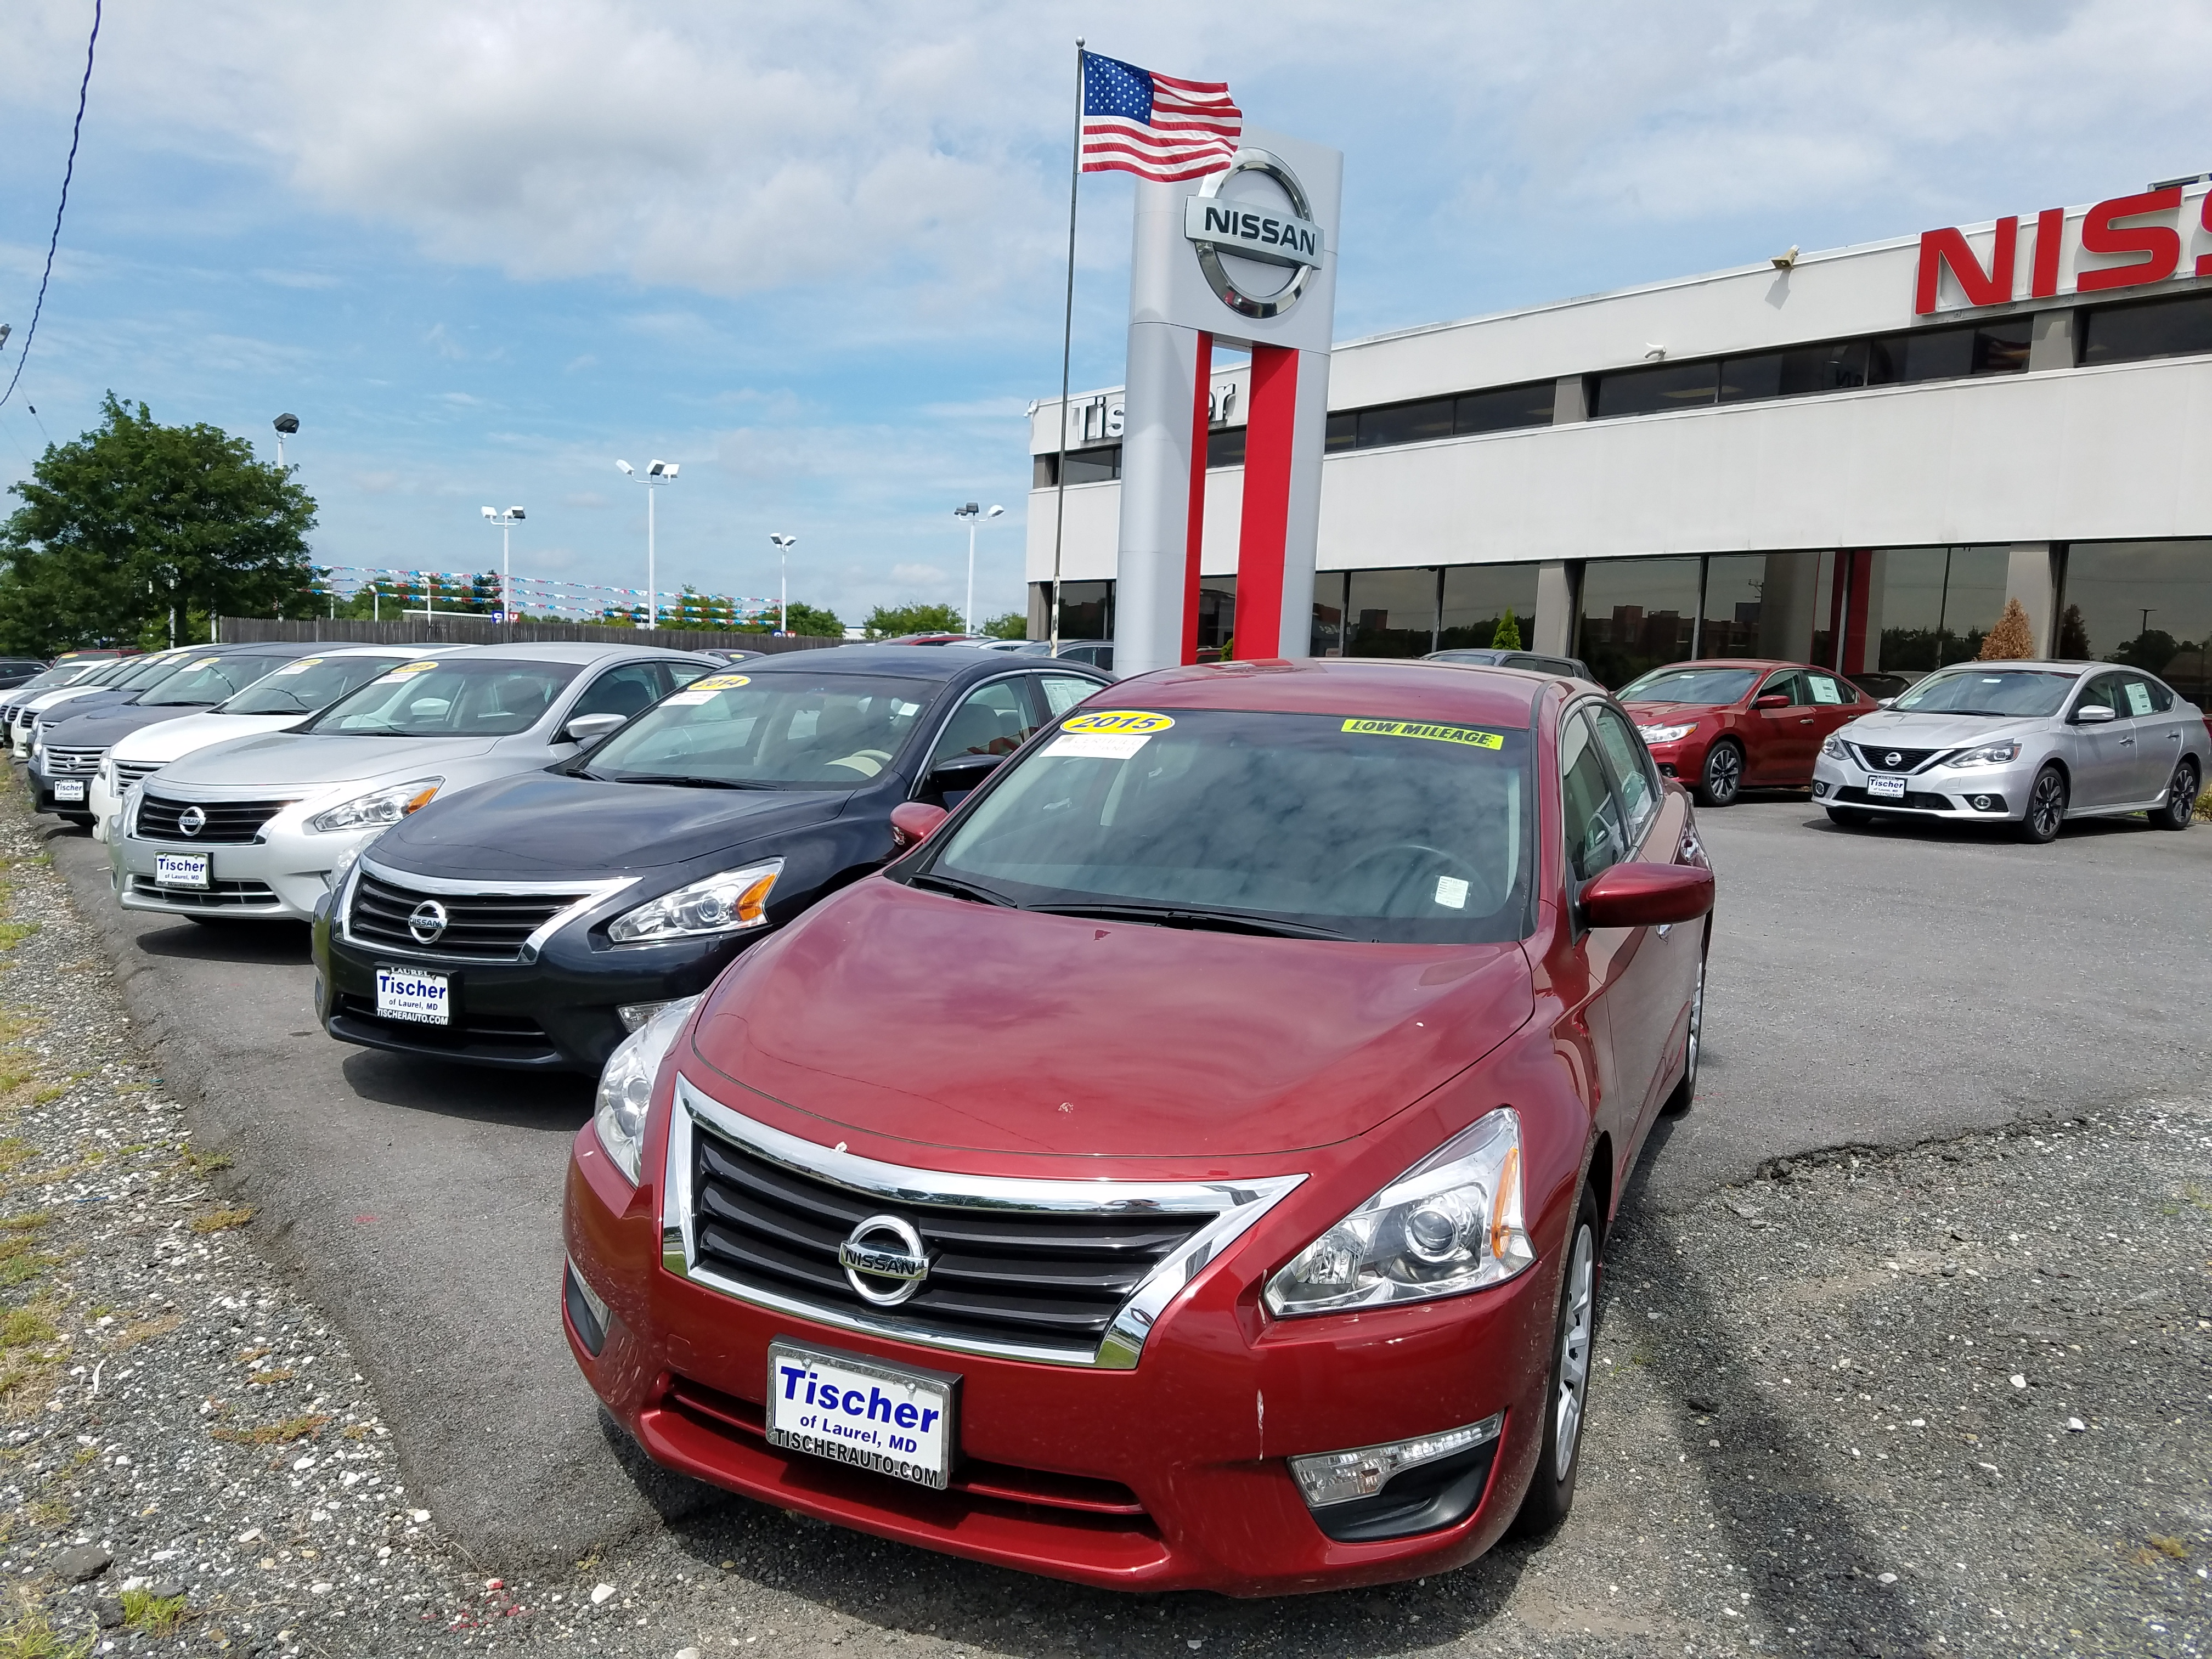 whiteside zoom offers hd sale pearl nissan in specials lease new view dealers md finance wa for rogue auburn